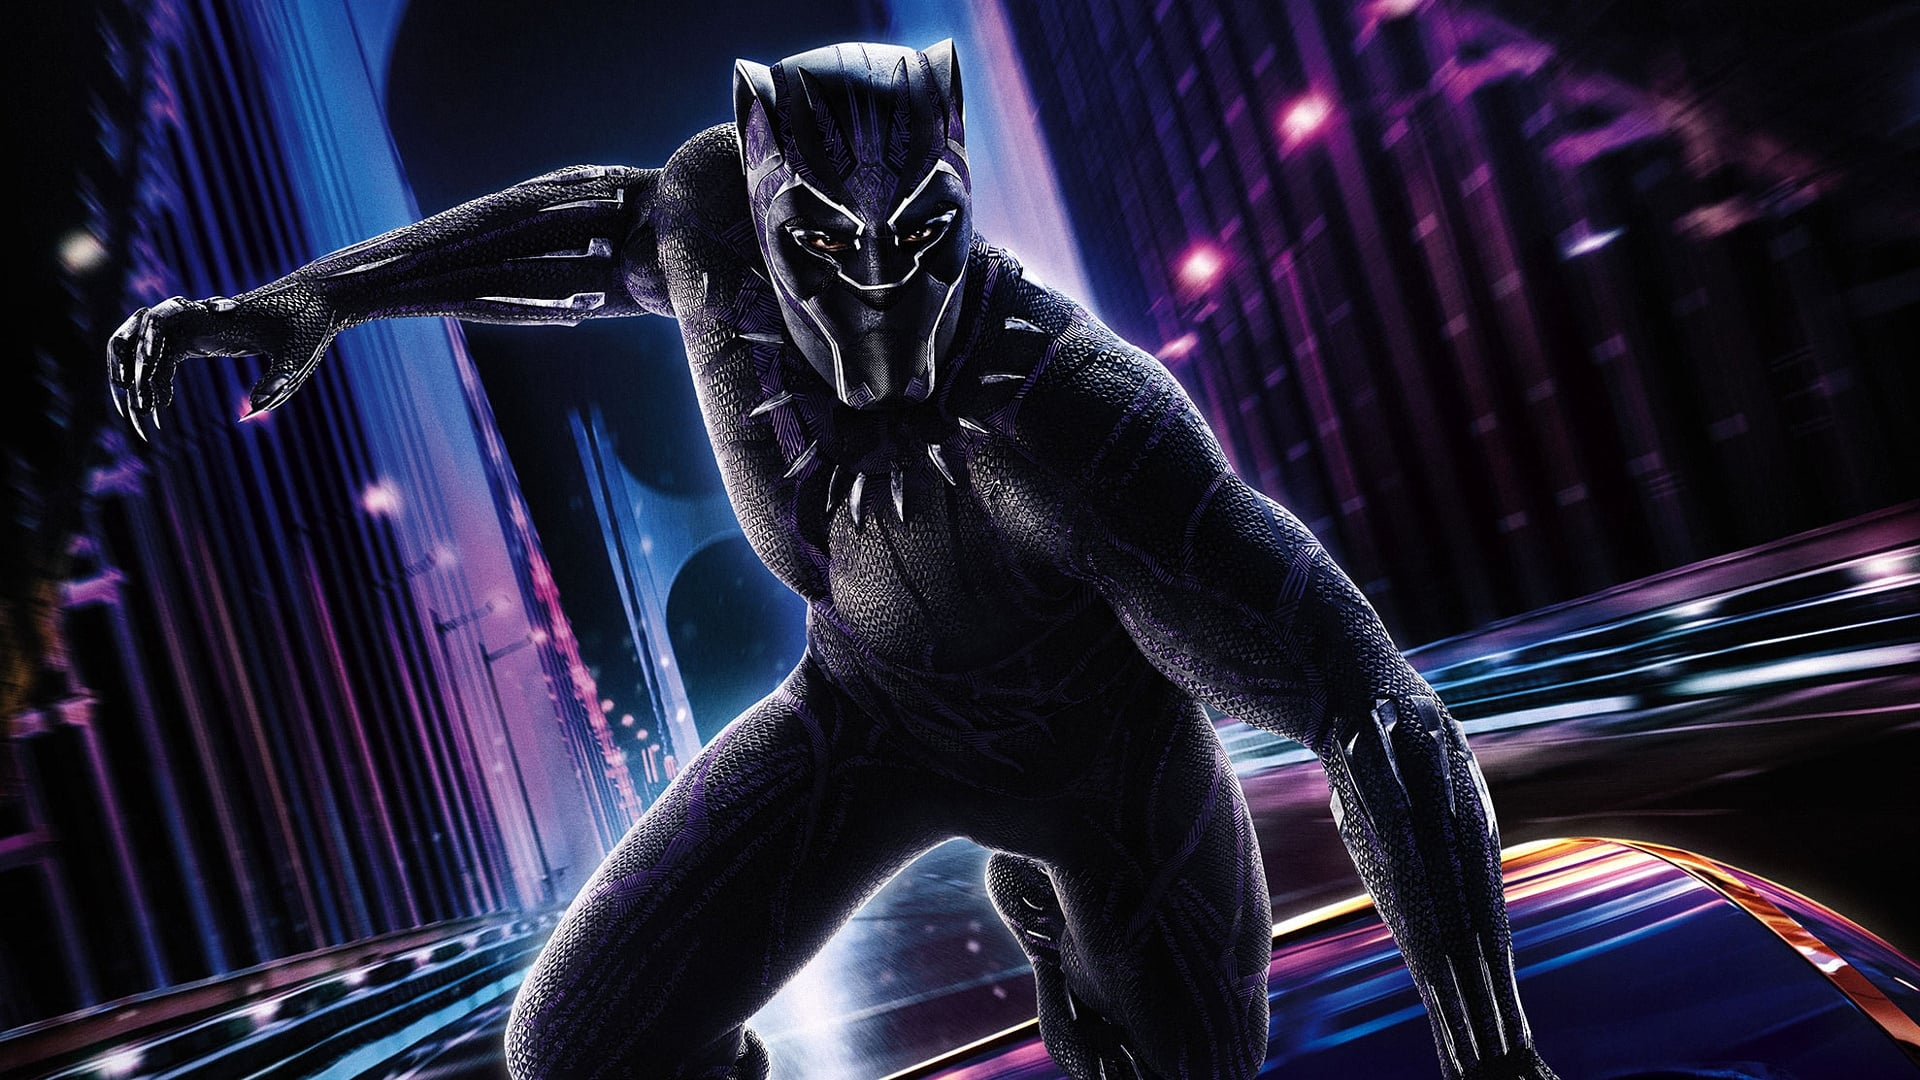 Full Free Watch Black Panther 2018 Online Movies